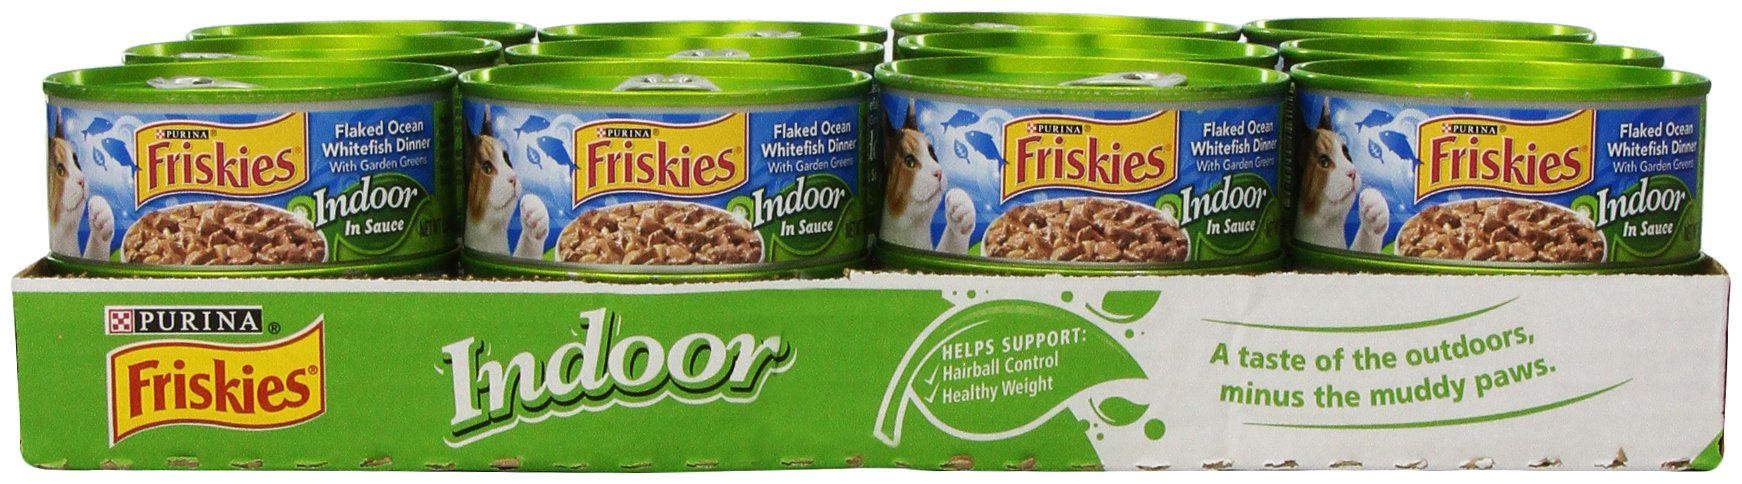 Purina Friskies Indoor Flaked Ocean Whitefish Dinner with Garden Greens in Sauce Cat Food - (24) 5.5 oz. Pull-top Can